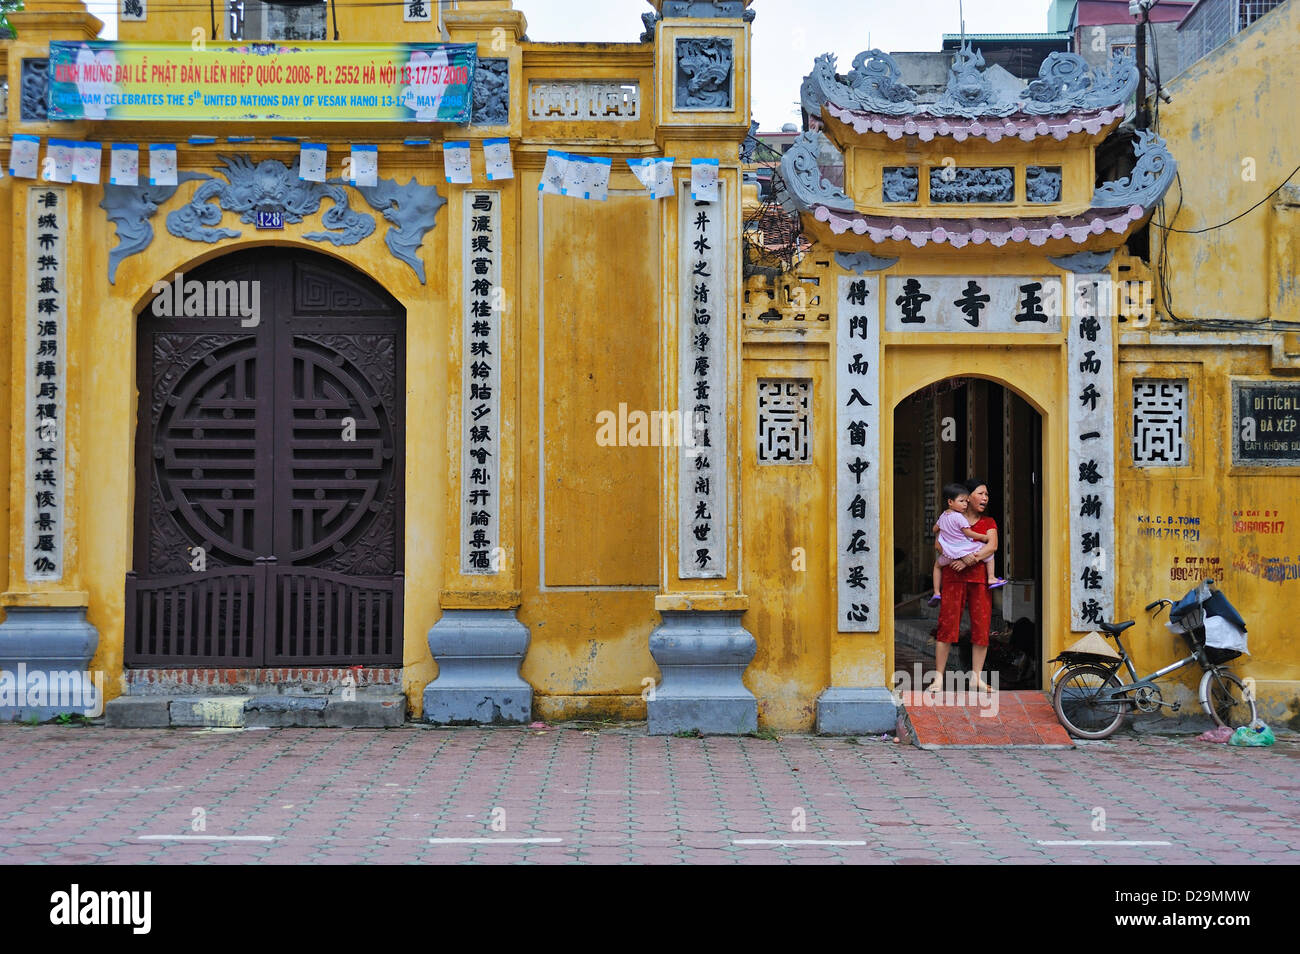 Ornate buildings in the city centre of Hanoi, Vietnam - Stock Image